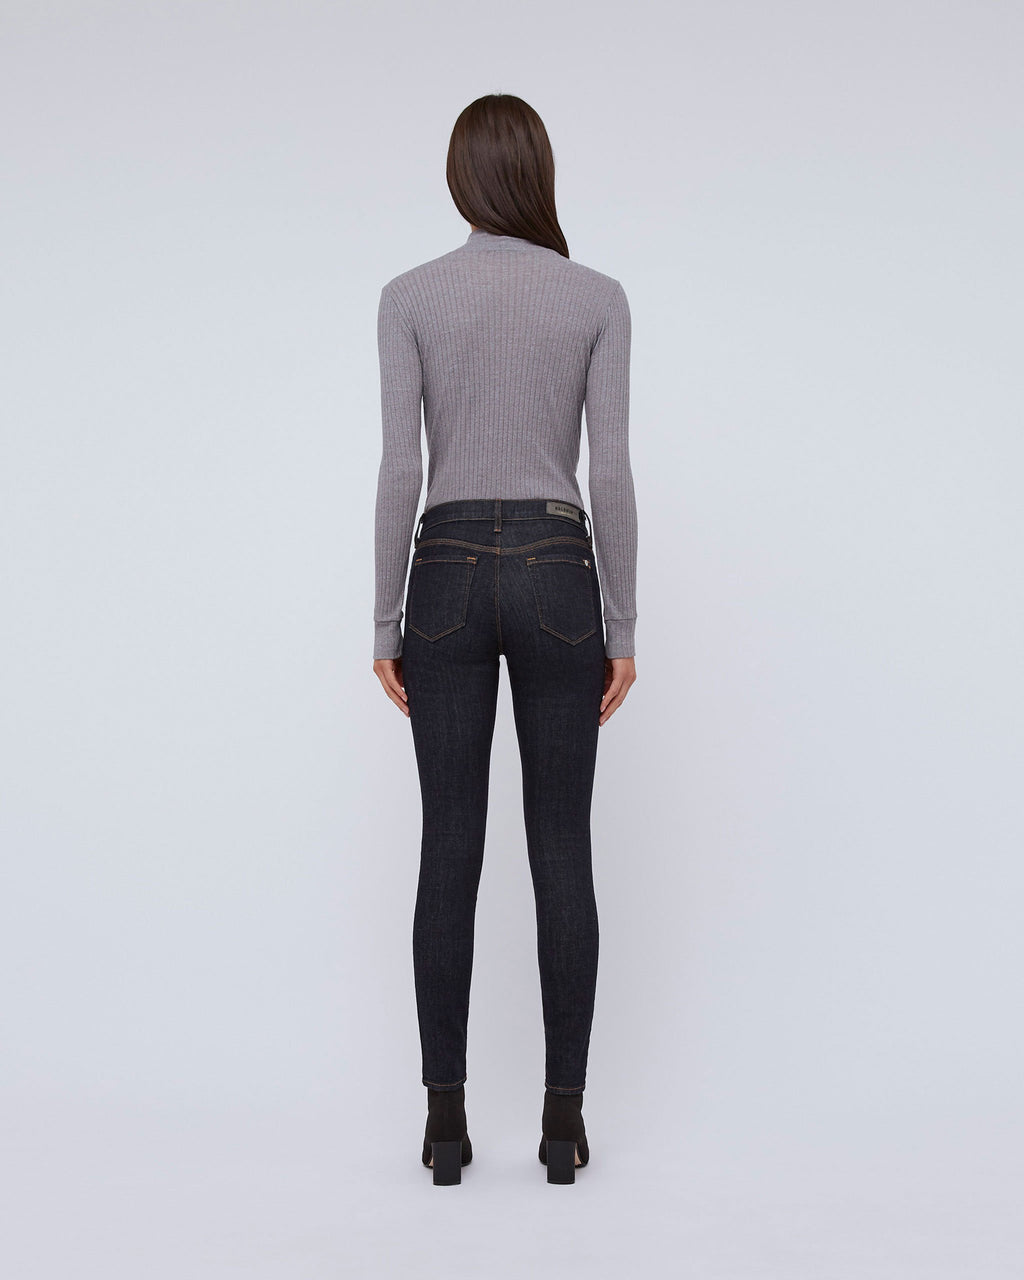 The Janie Turtleneck In Mist Heather